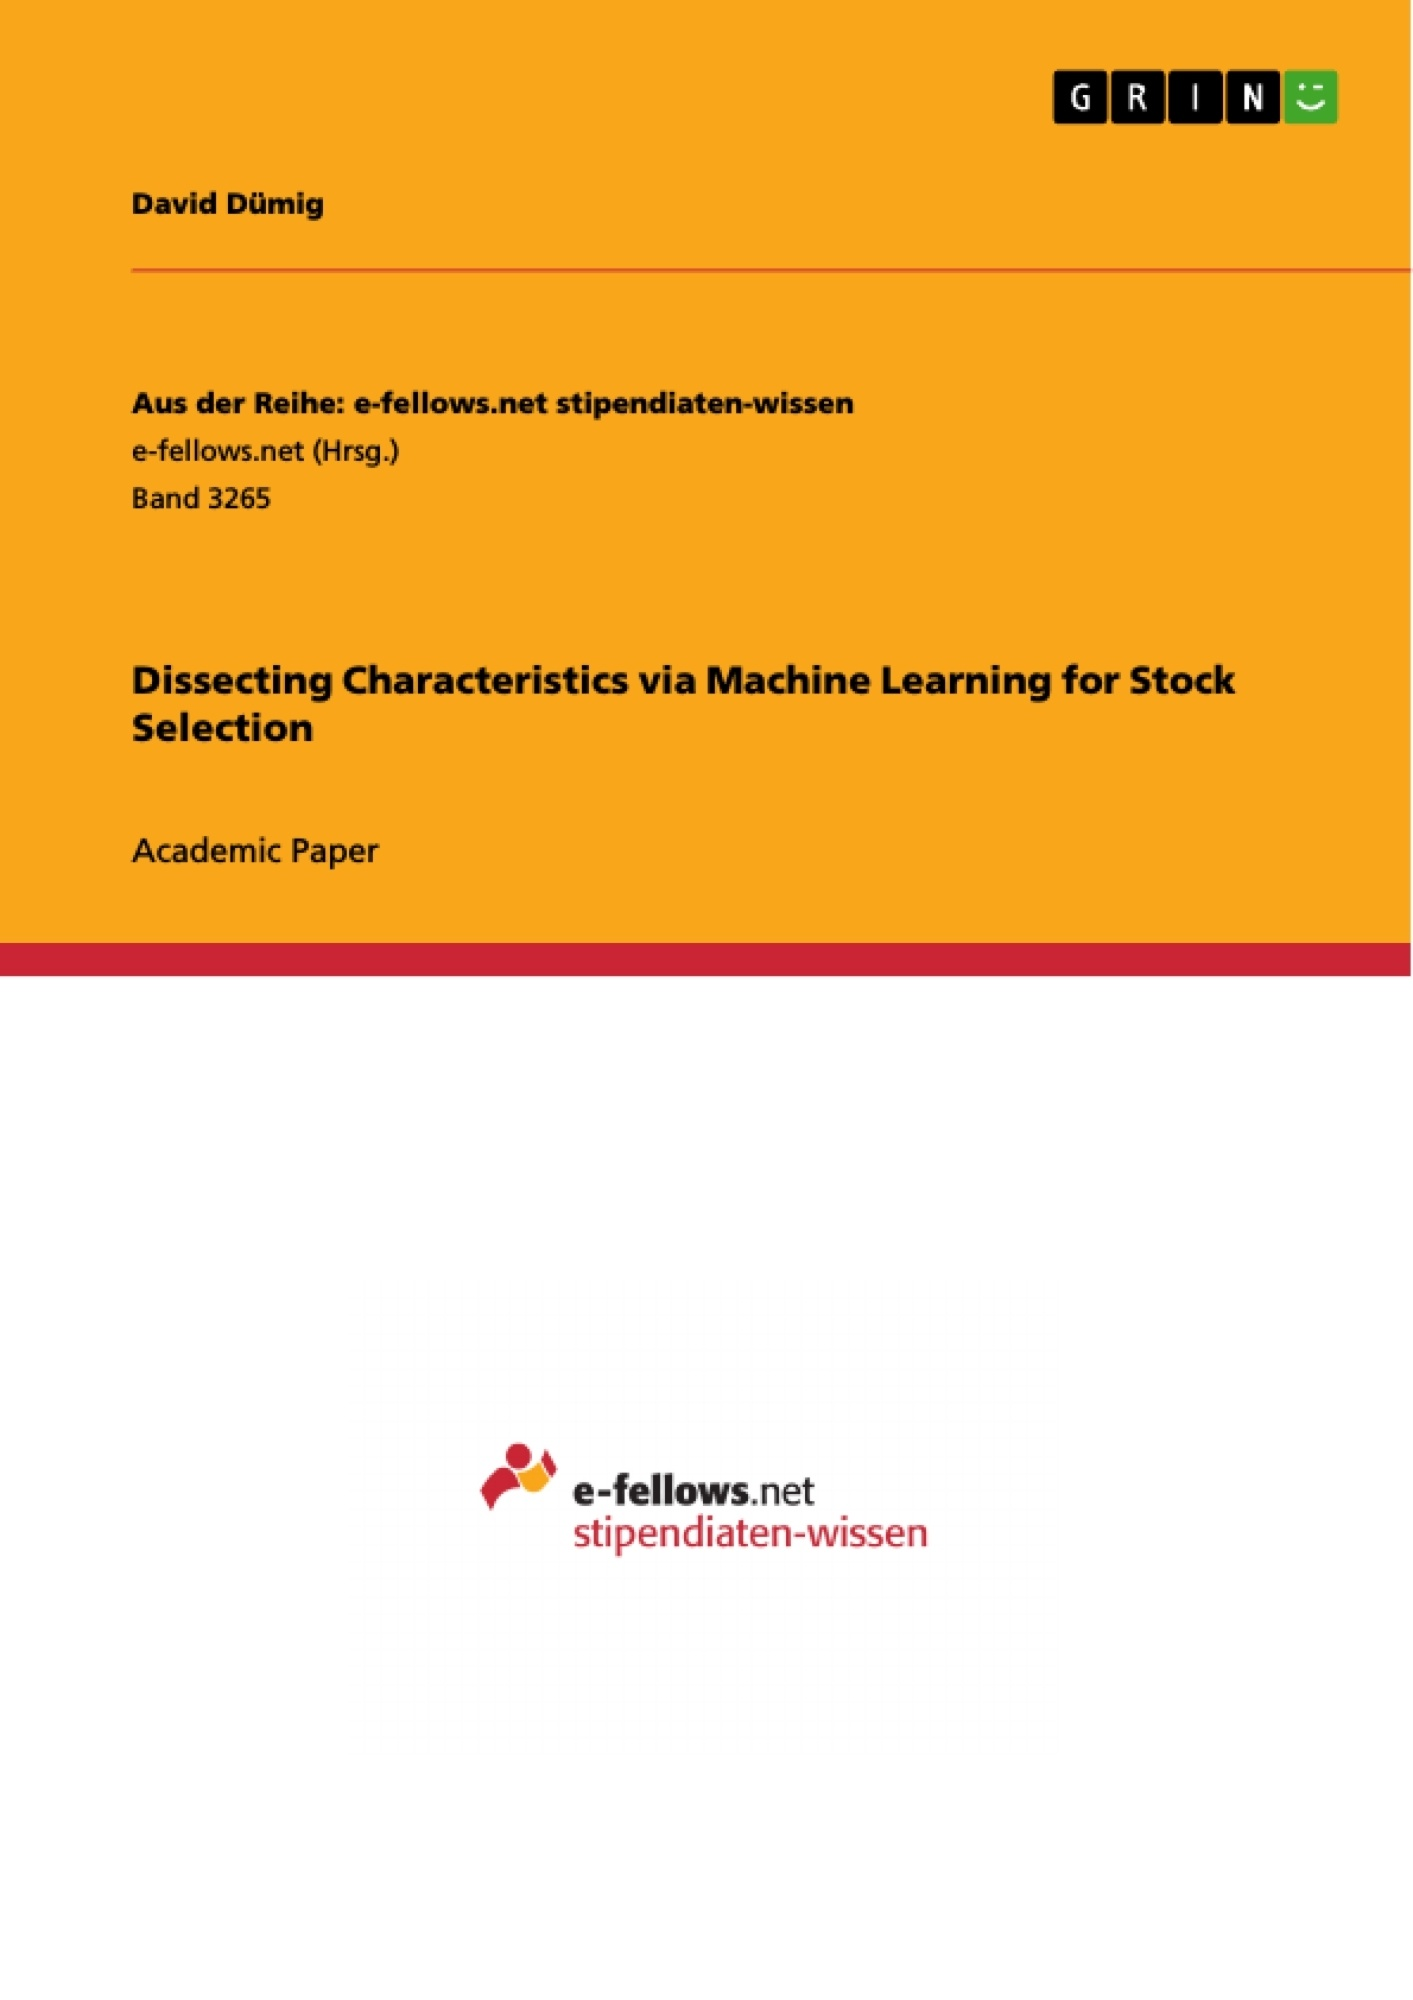 Title: Dissecting Characteristics via Machine Learning for Stock Selection